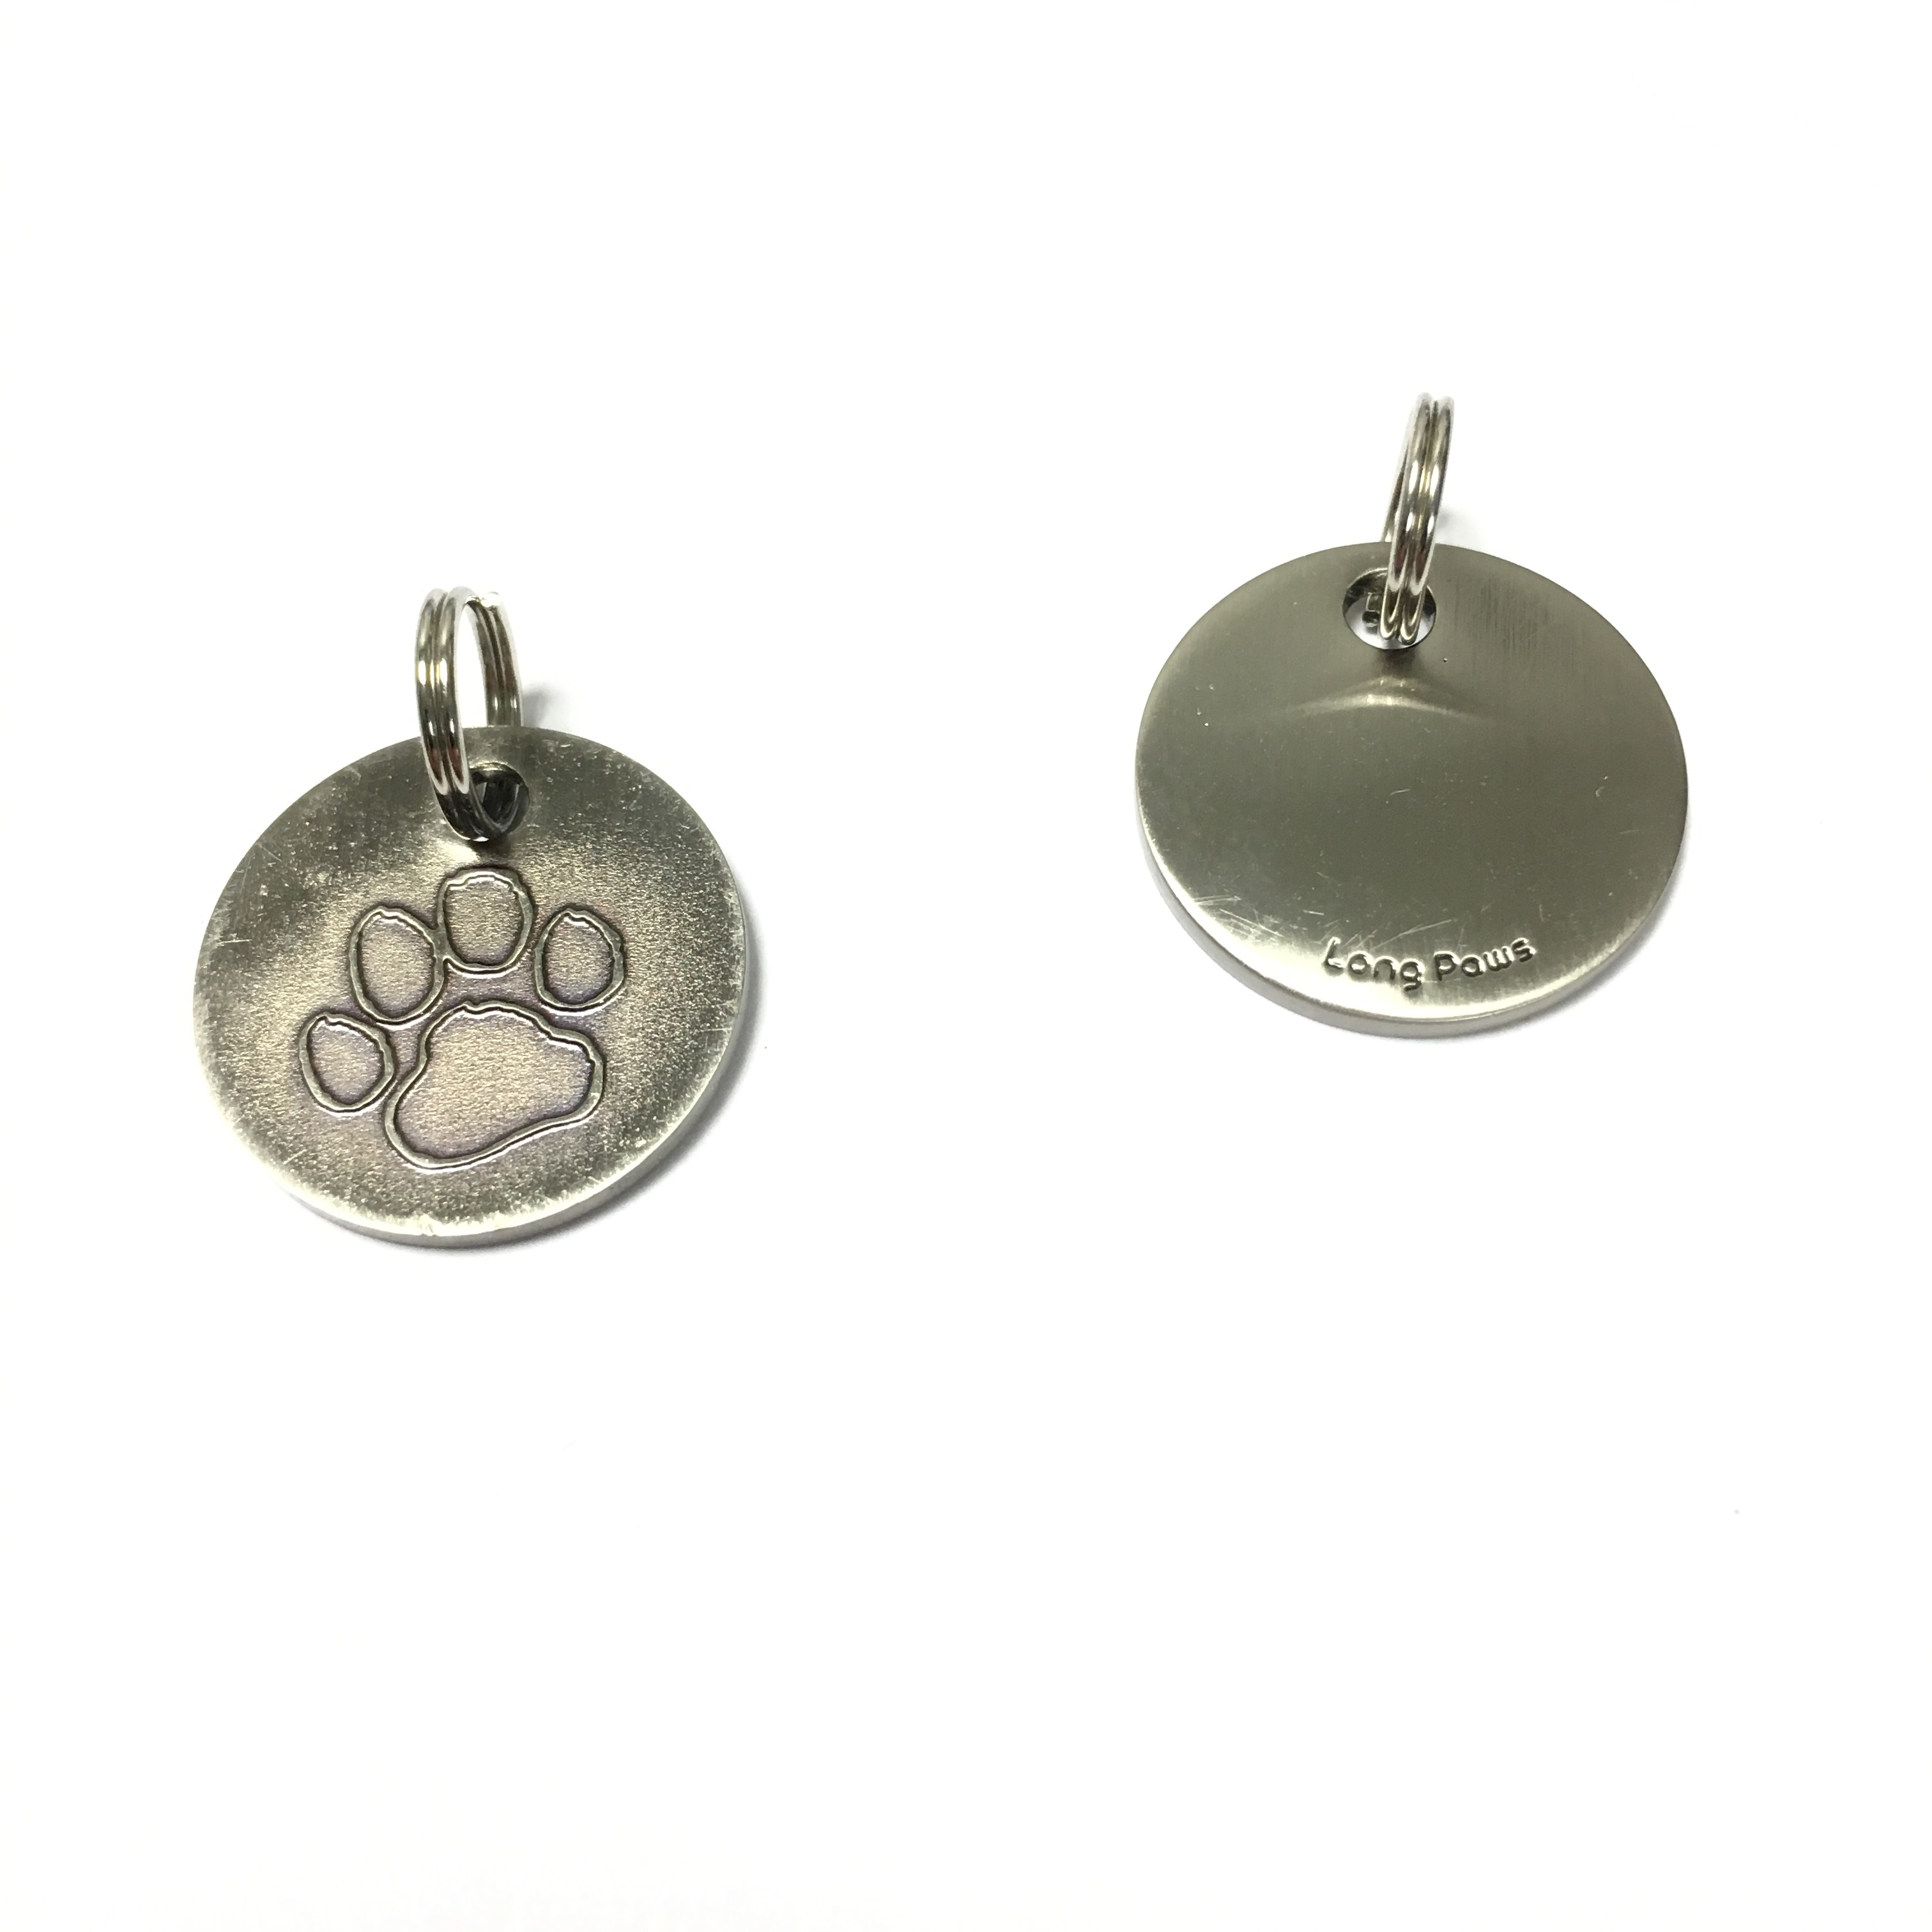 Long Paws Antique Nickel Plated Dog tag with a Paw Design Image